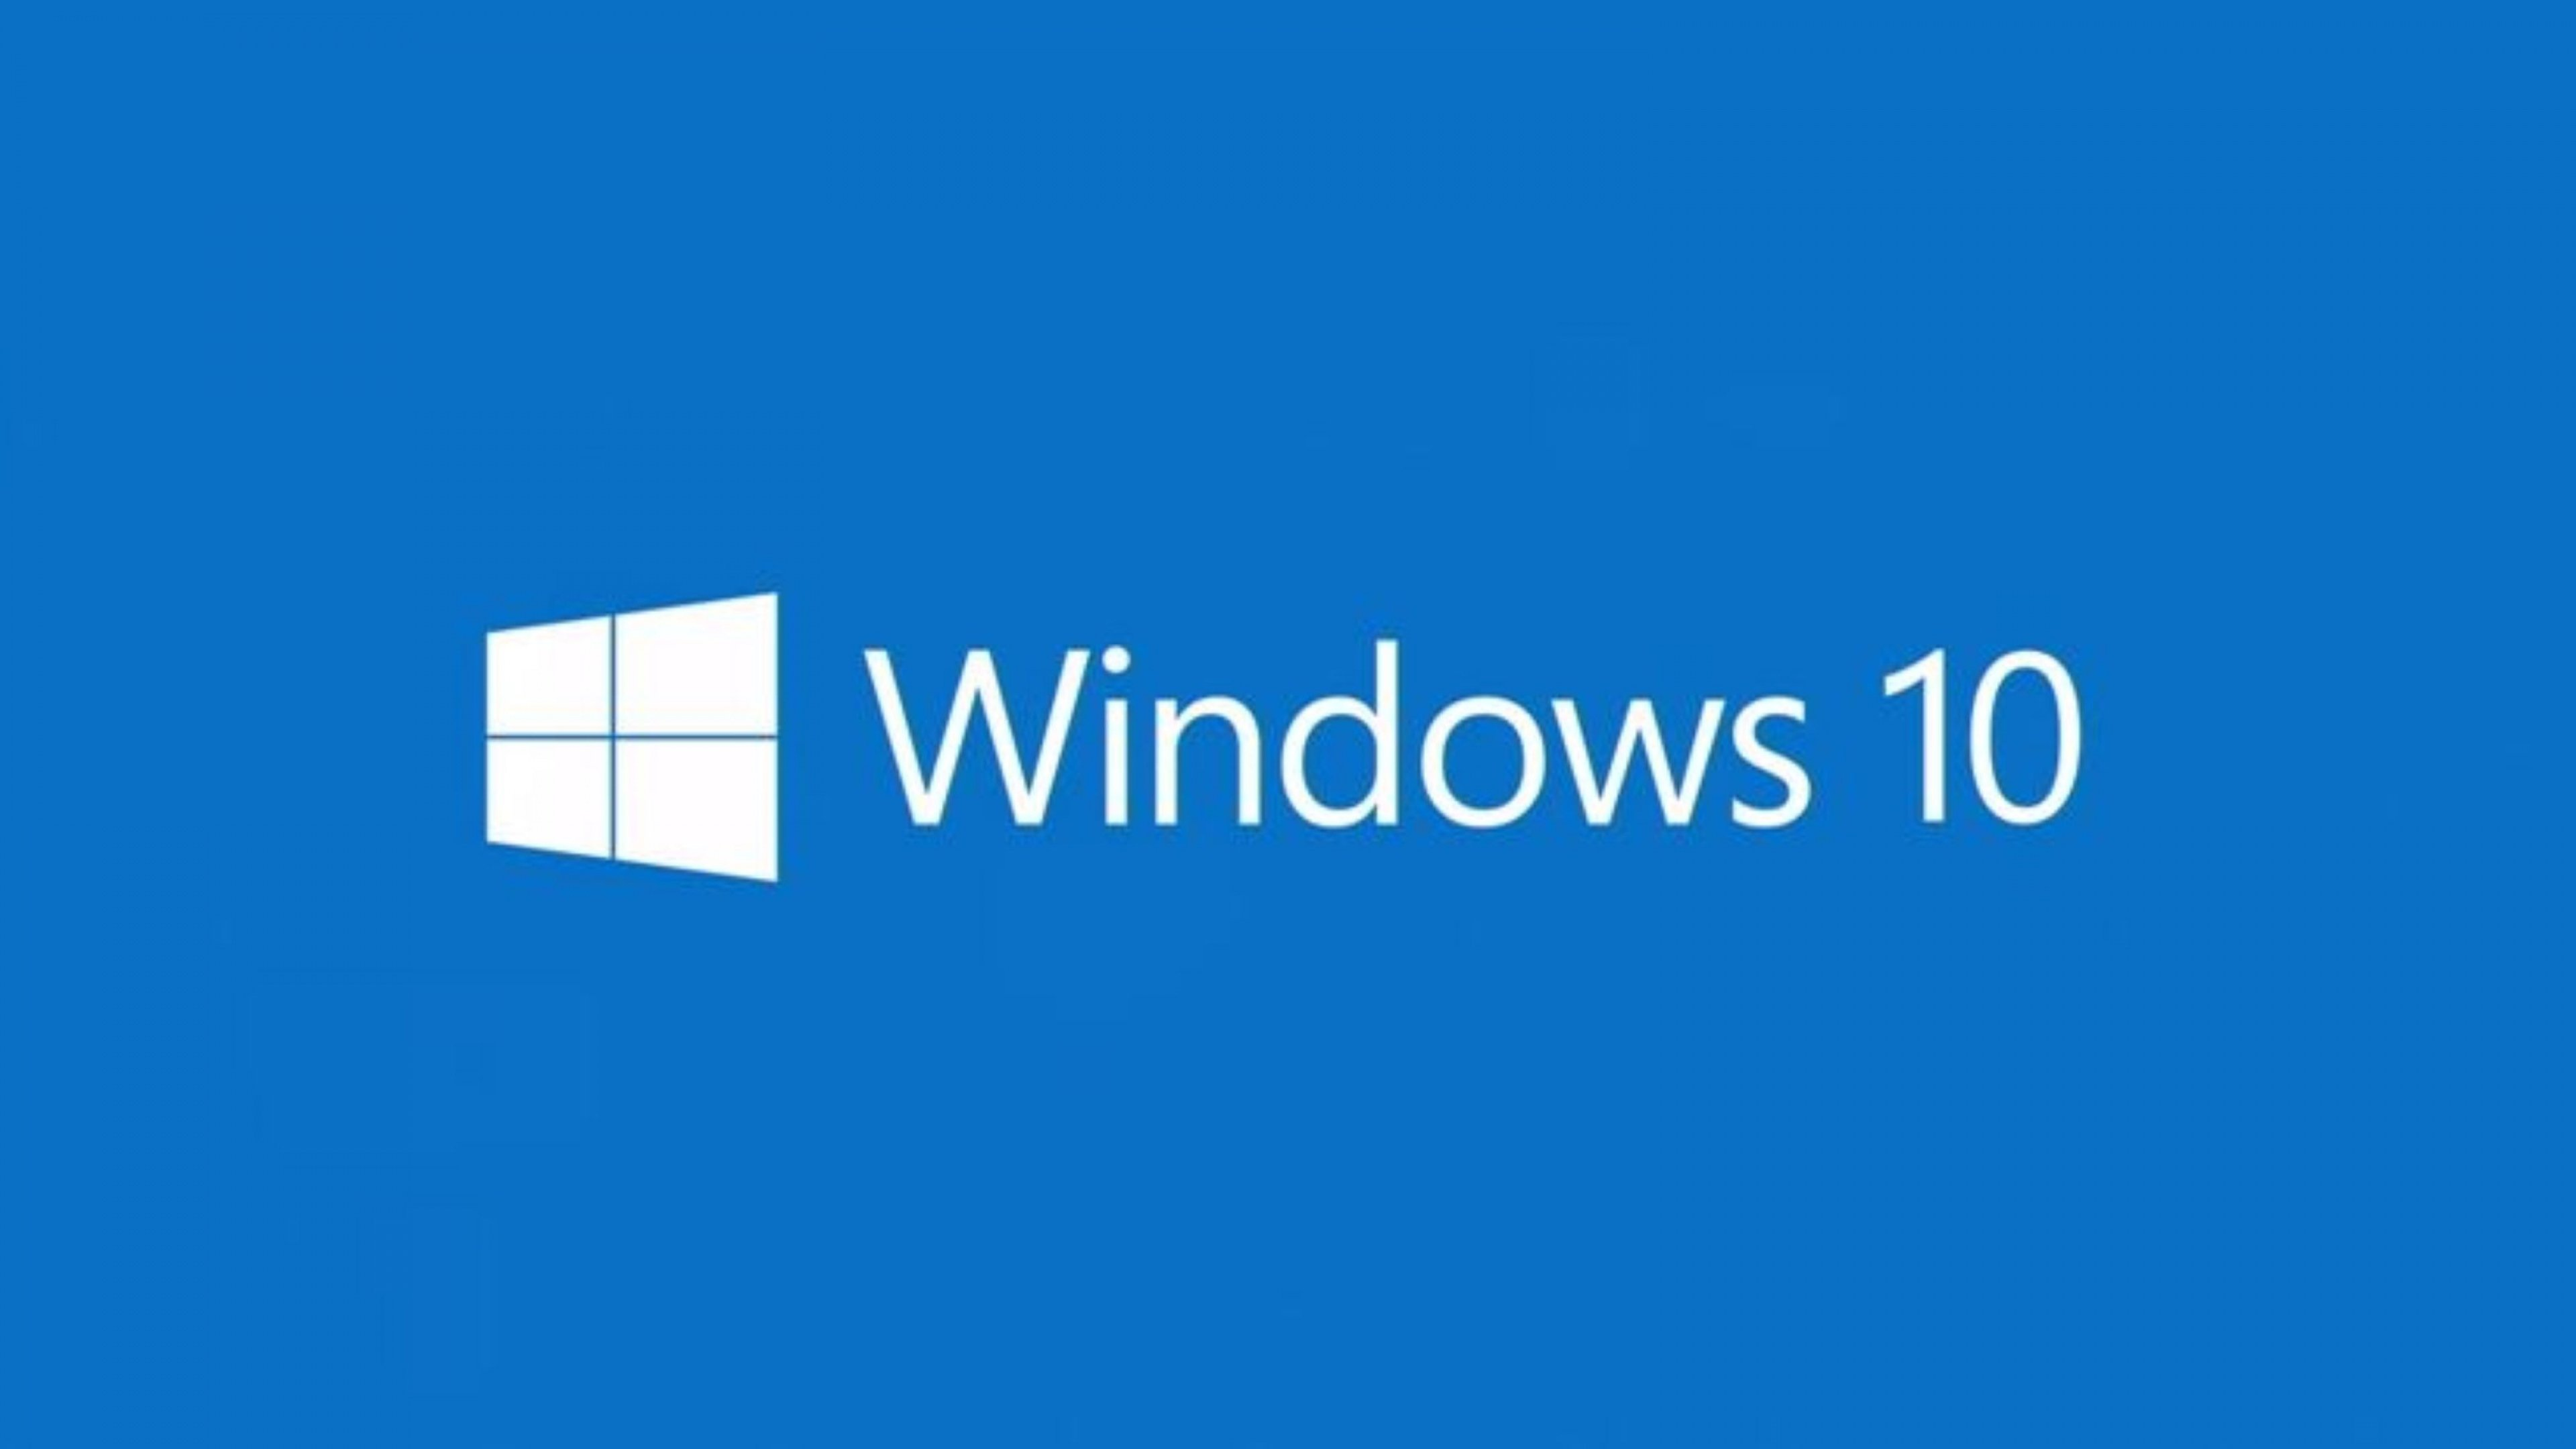 Free Download Windows 10 4k Wallpapers Ultra Hd Top 15 Axeetech 3840x2160 For Your Desktop Mobile Tablet Explore 44 4k Wallpaper Windows Theme Ultra Hd 3840x2160 Wallpaper 4k Uhd